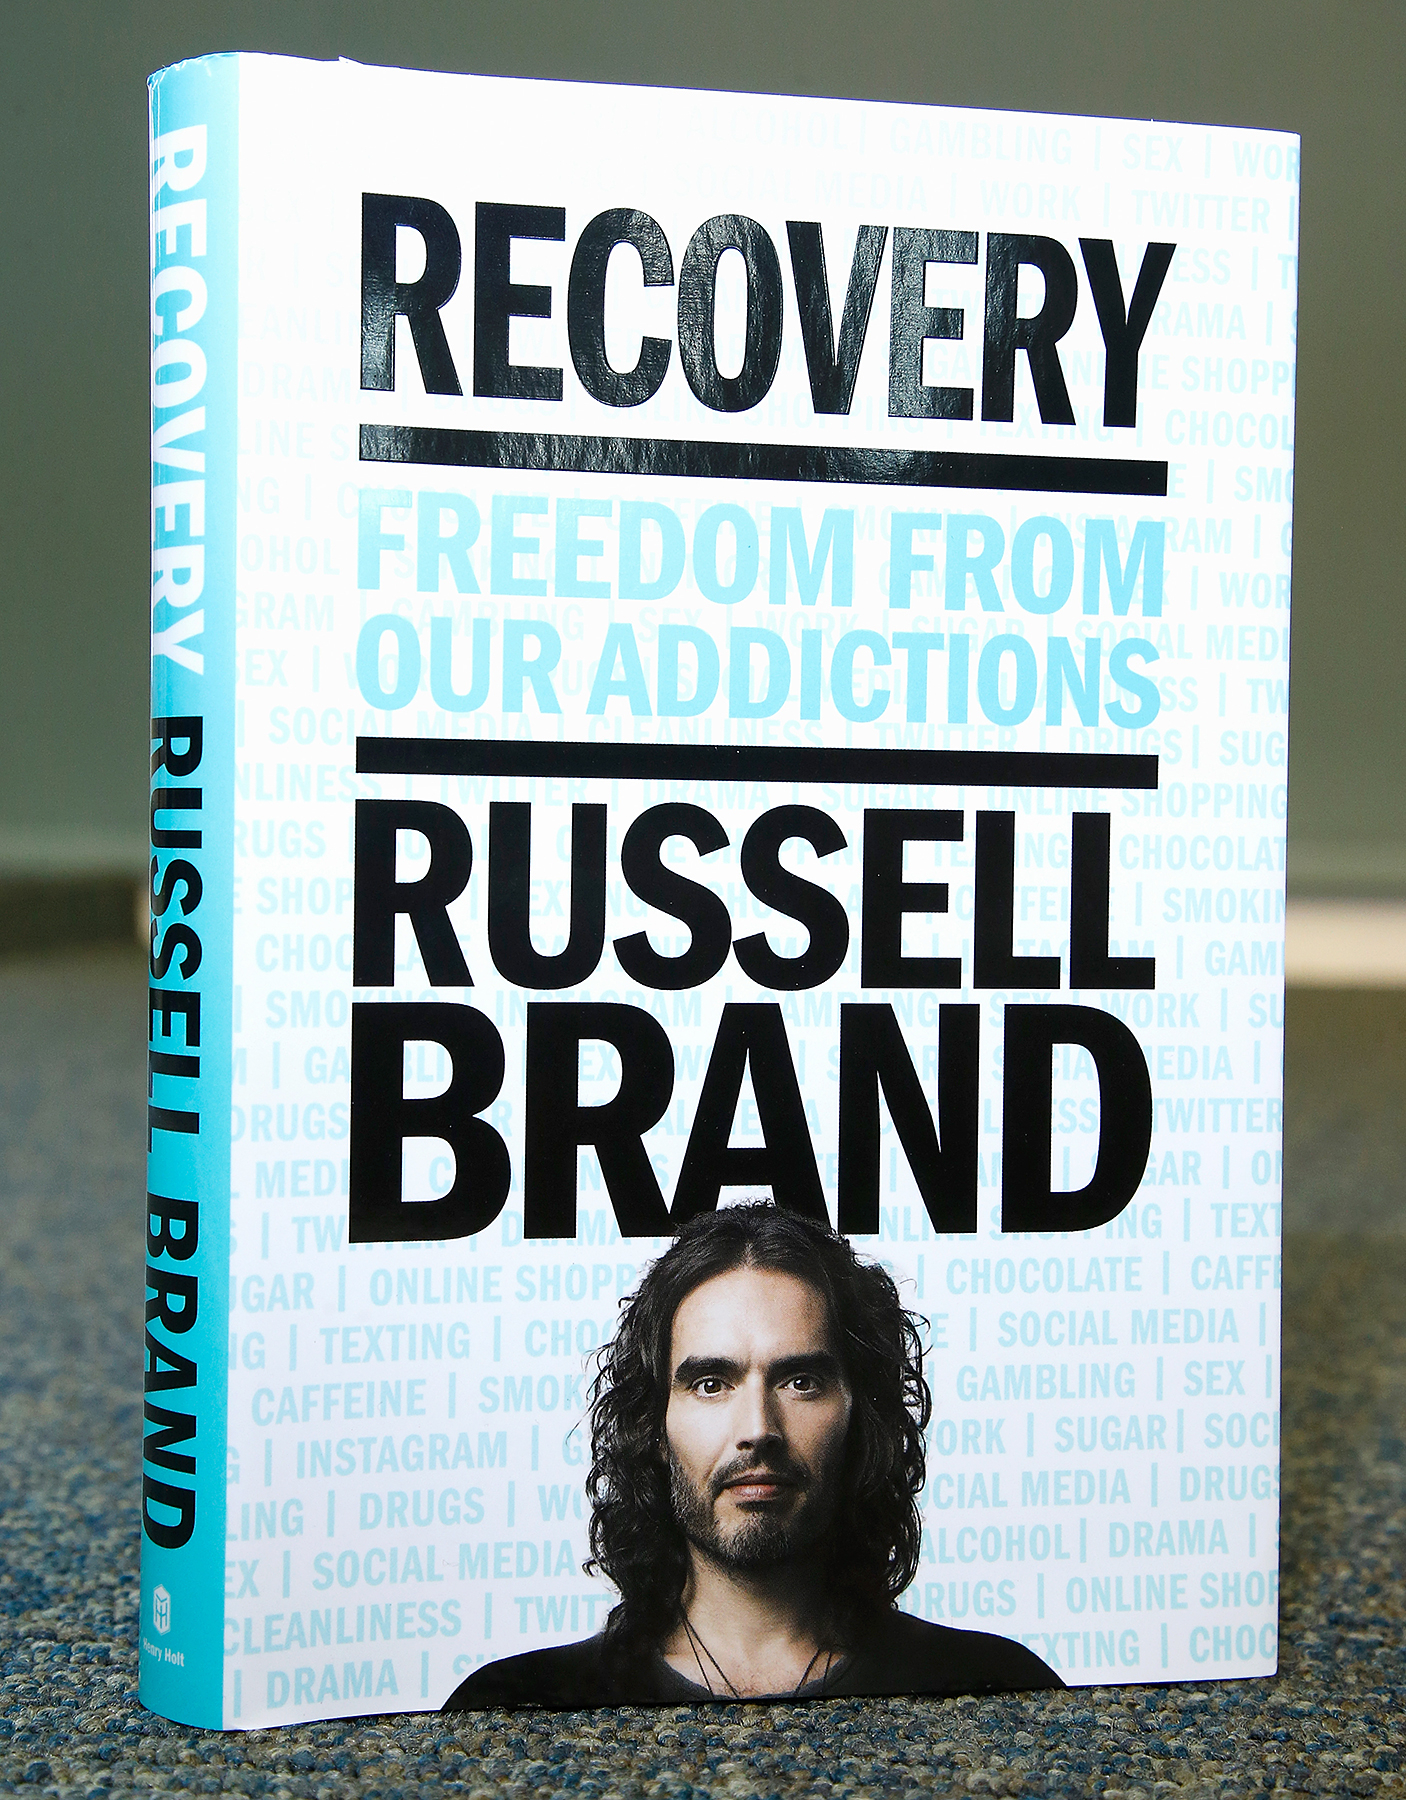 Russell Brand Recovery: Freedom From Our Addictions